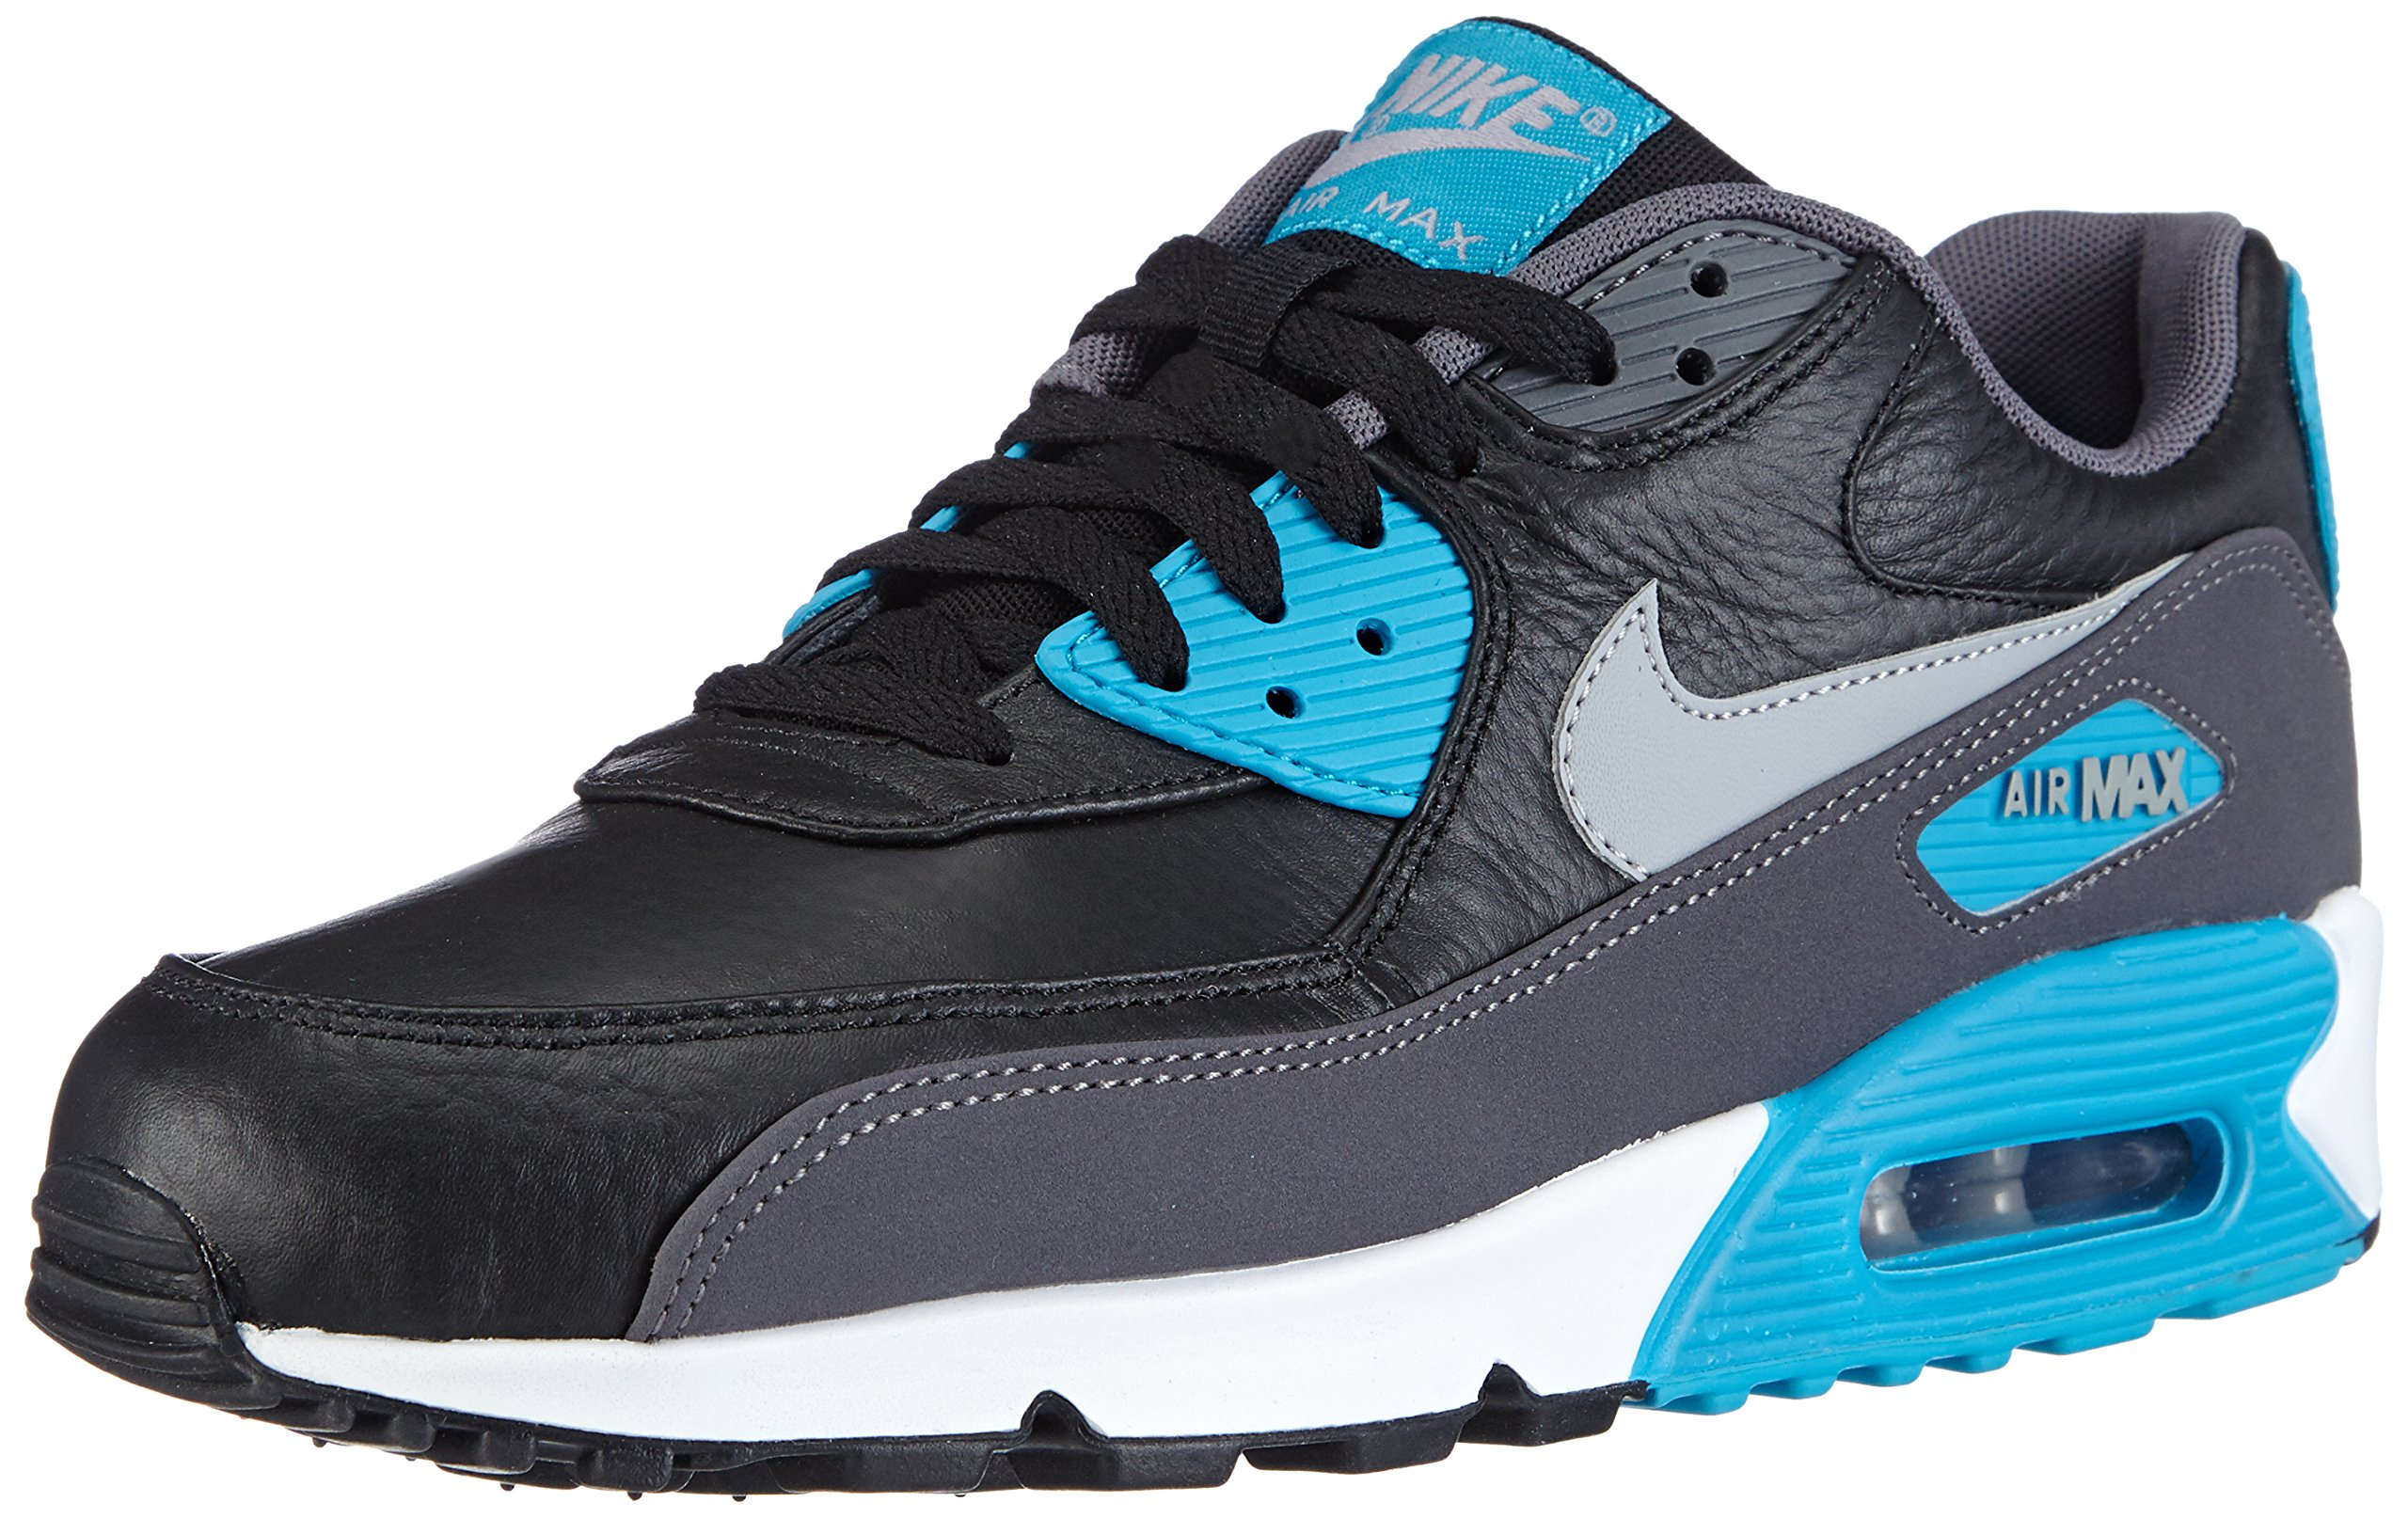 various colors aa5c1 2af85 Galleon - Nike AIR MAX 90 LTR Men's Running Shoes Sneakers 652980-004 (M US  8) Black/Blue